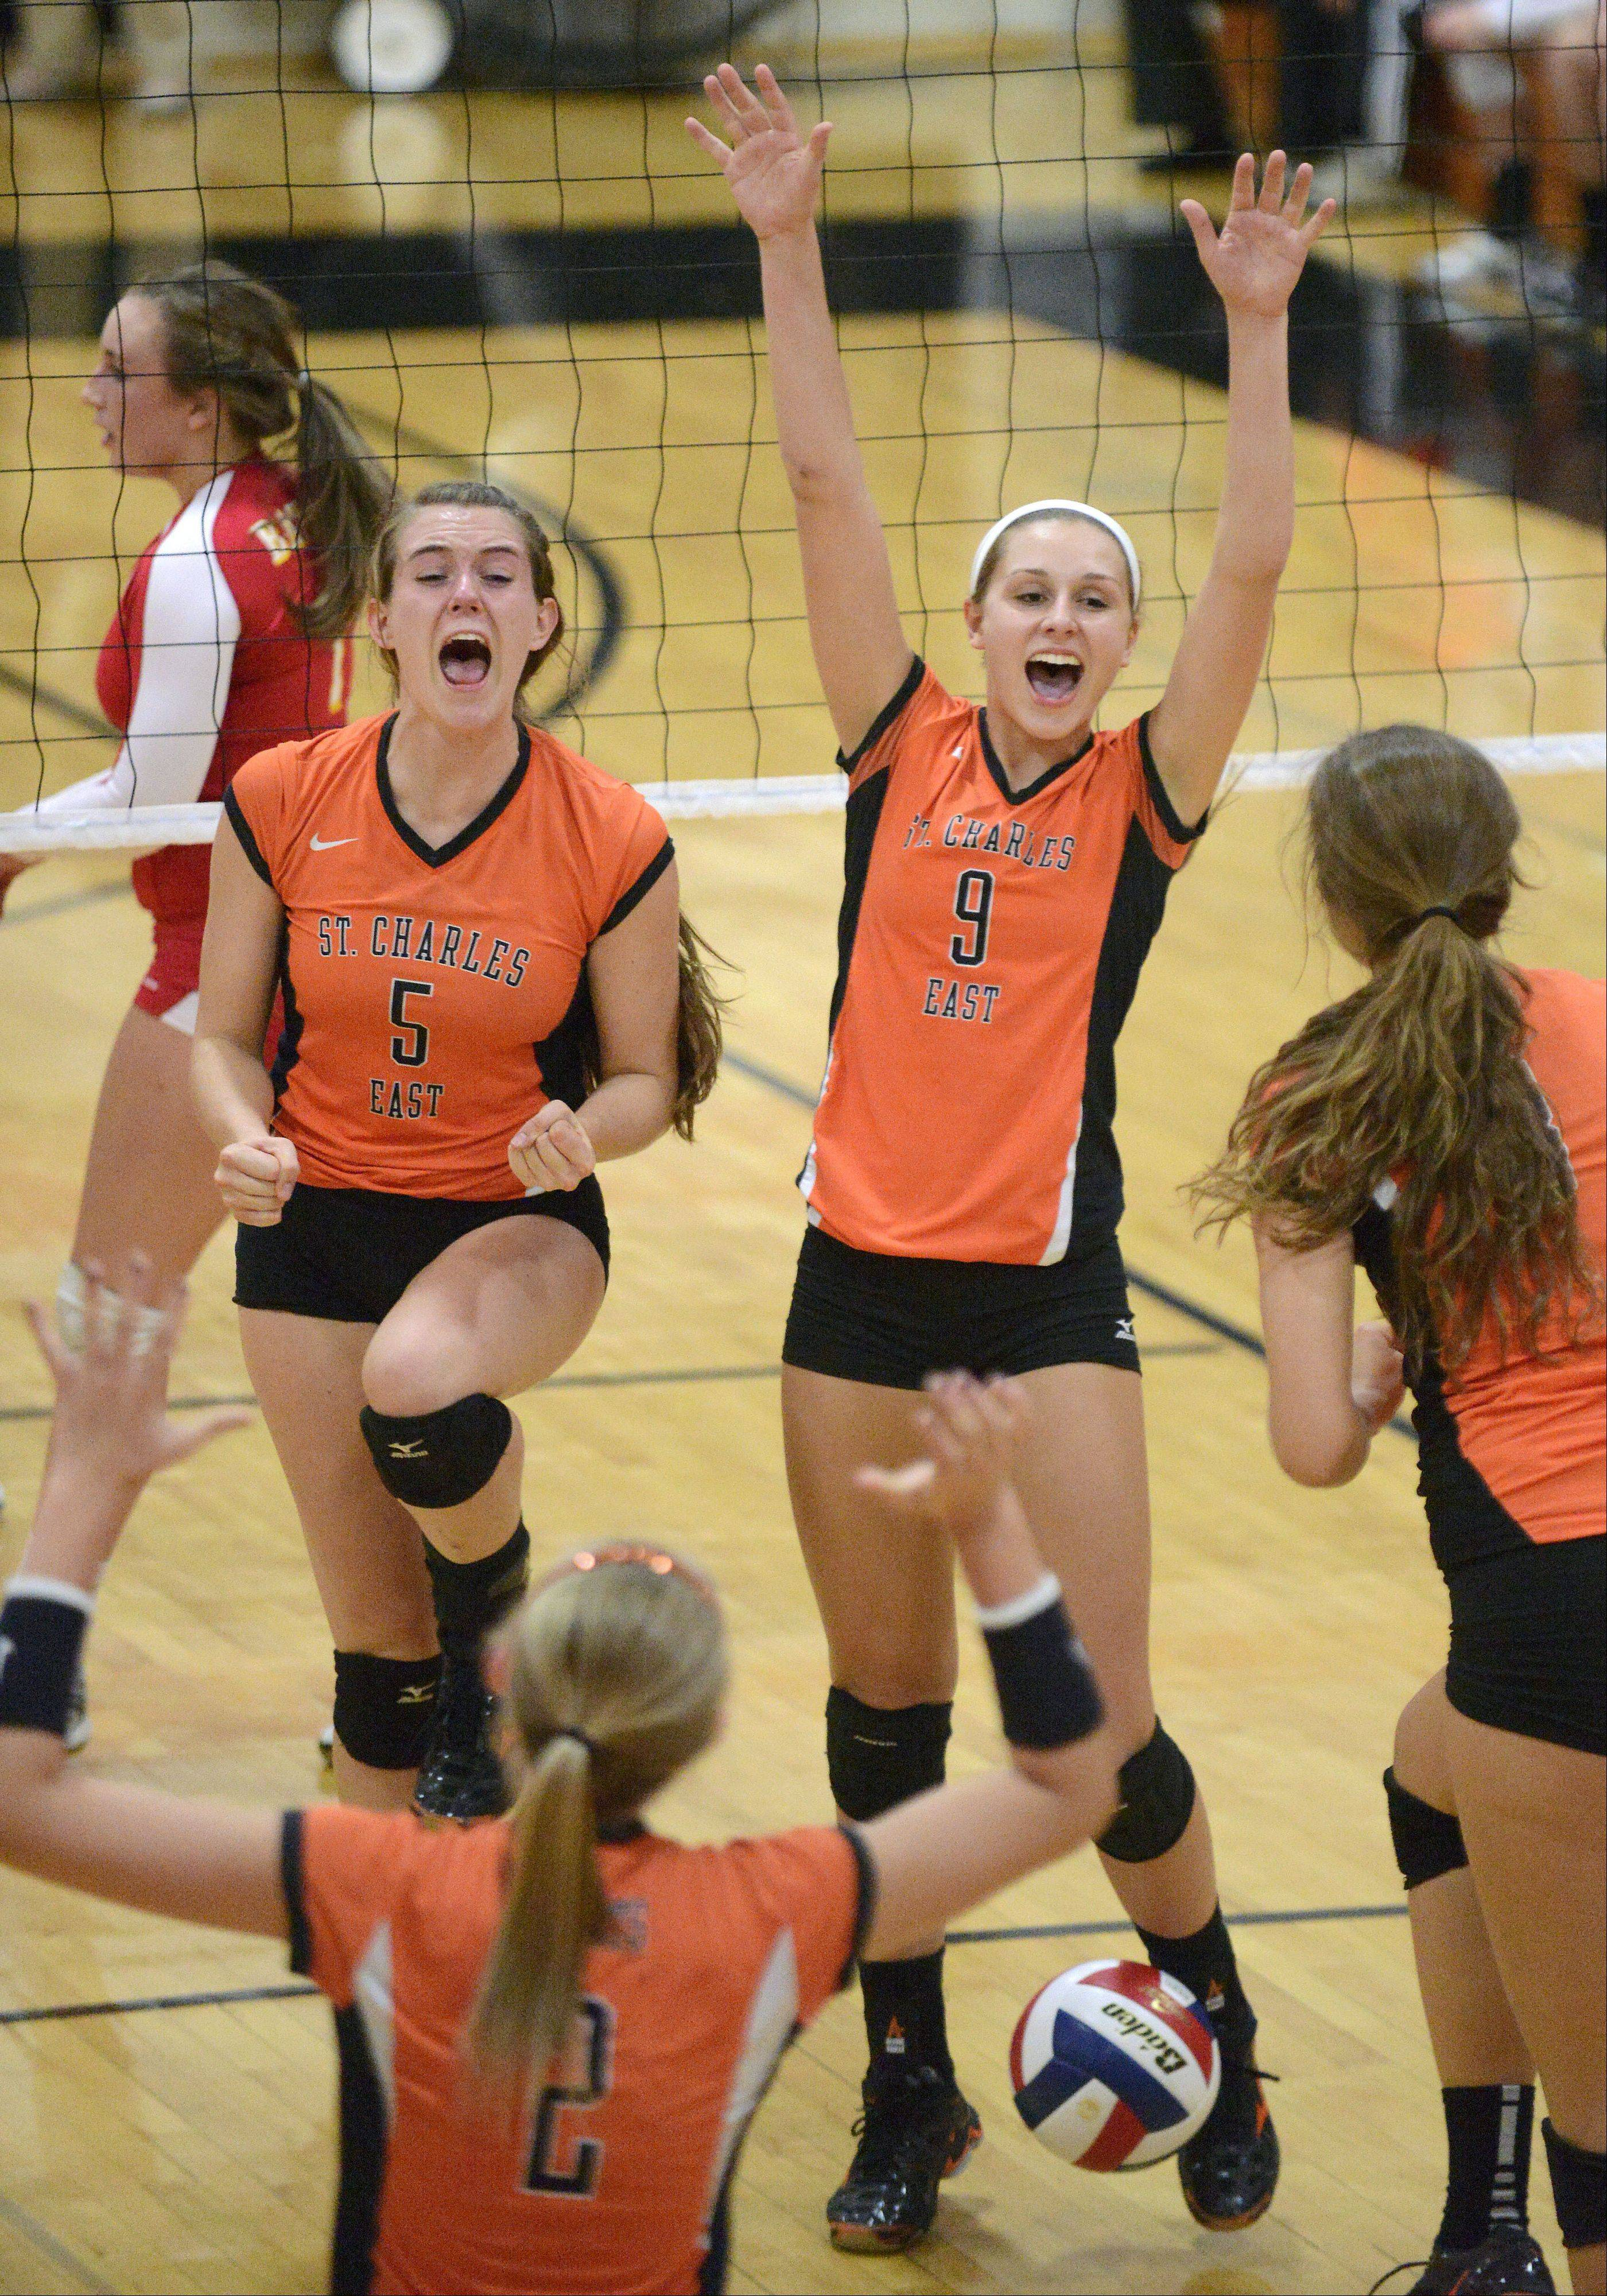 St. Charles East's Alex Mazanke (5) and Megan Schildmeyer (9) celebrate a point over Batavia in the first match on Tuesday, October 14.